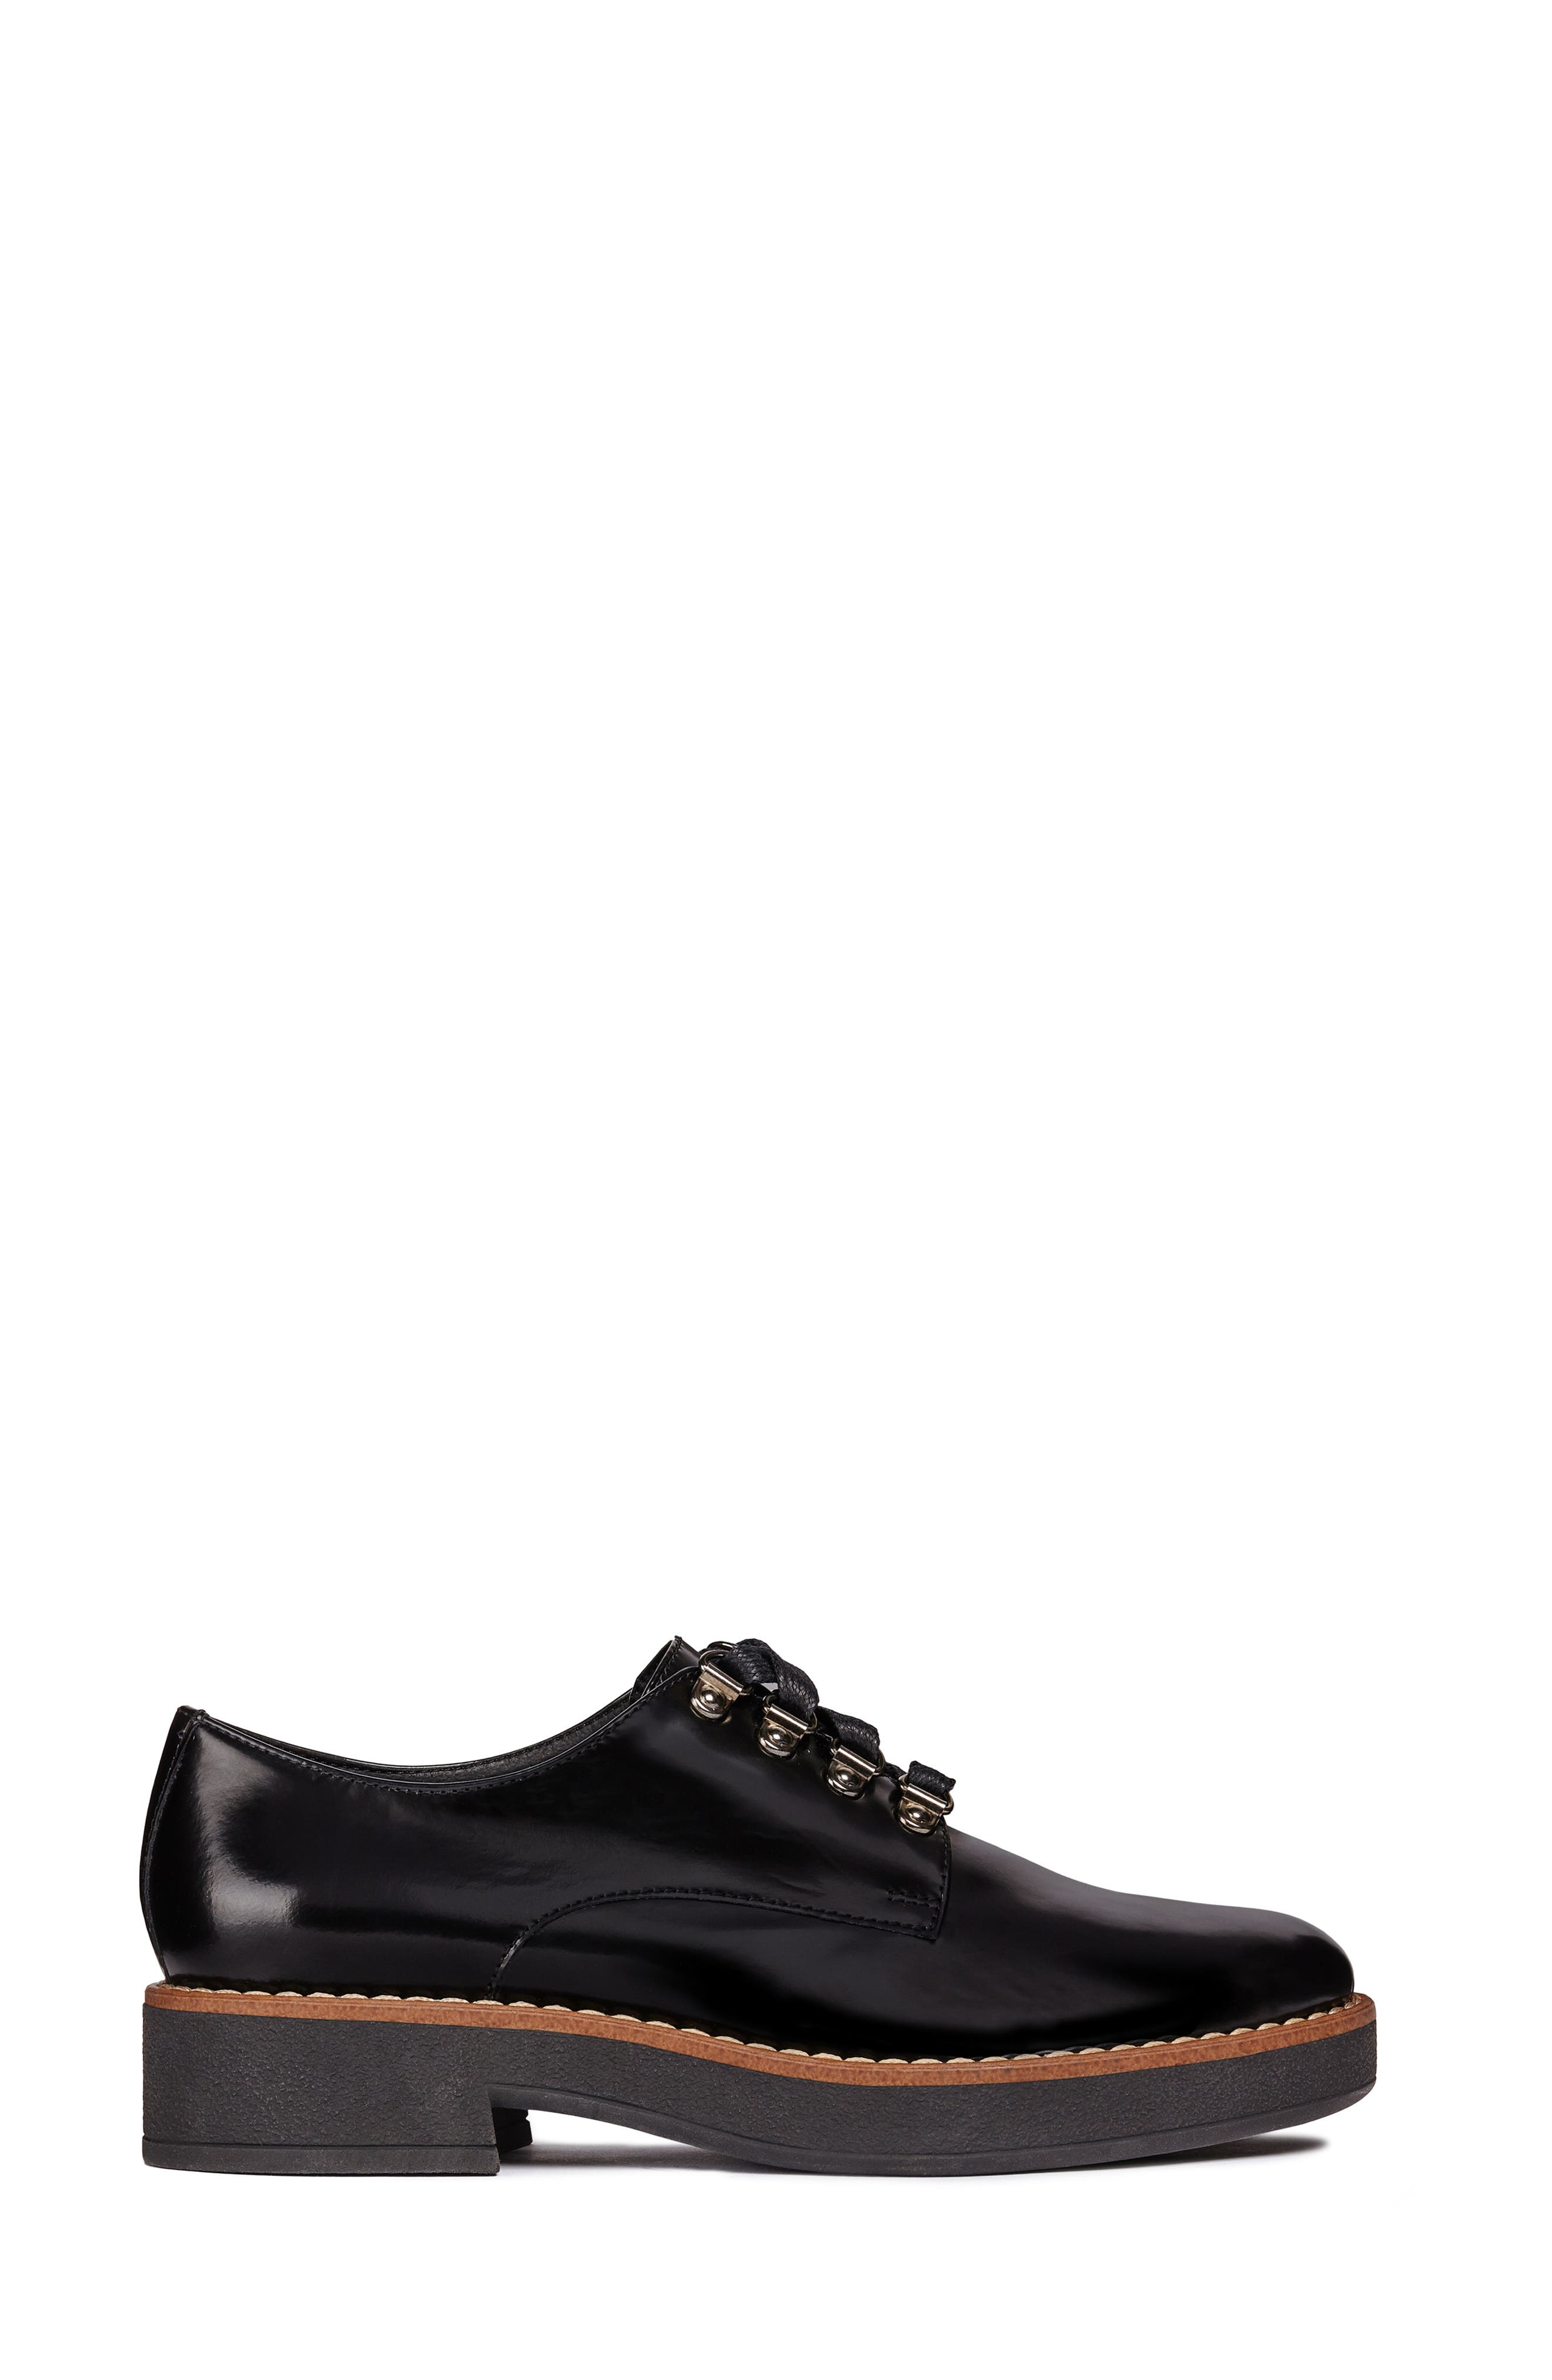 Adrya Oxford,                             Alternate thumbnail 3, color,                             BLACK/ BEIGE LEATHER